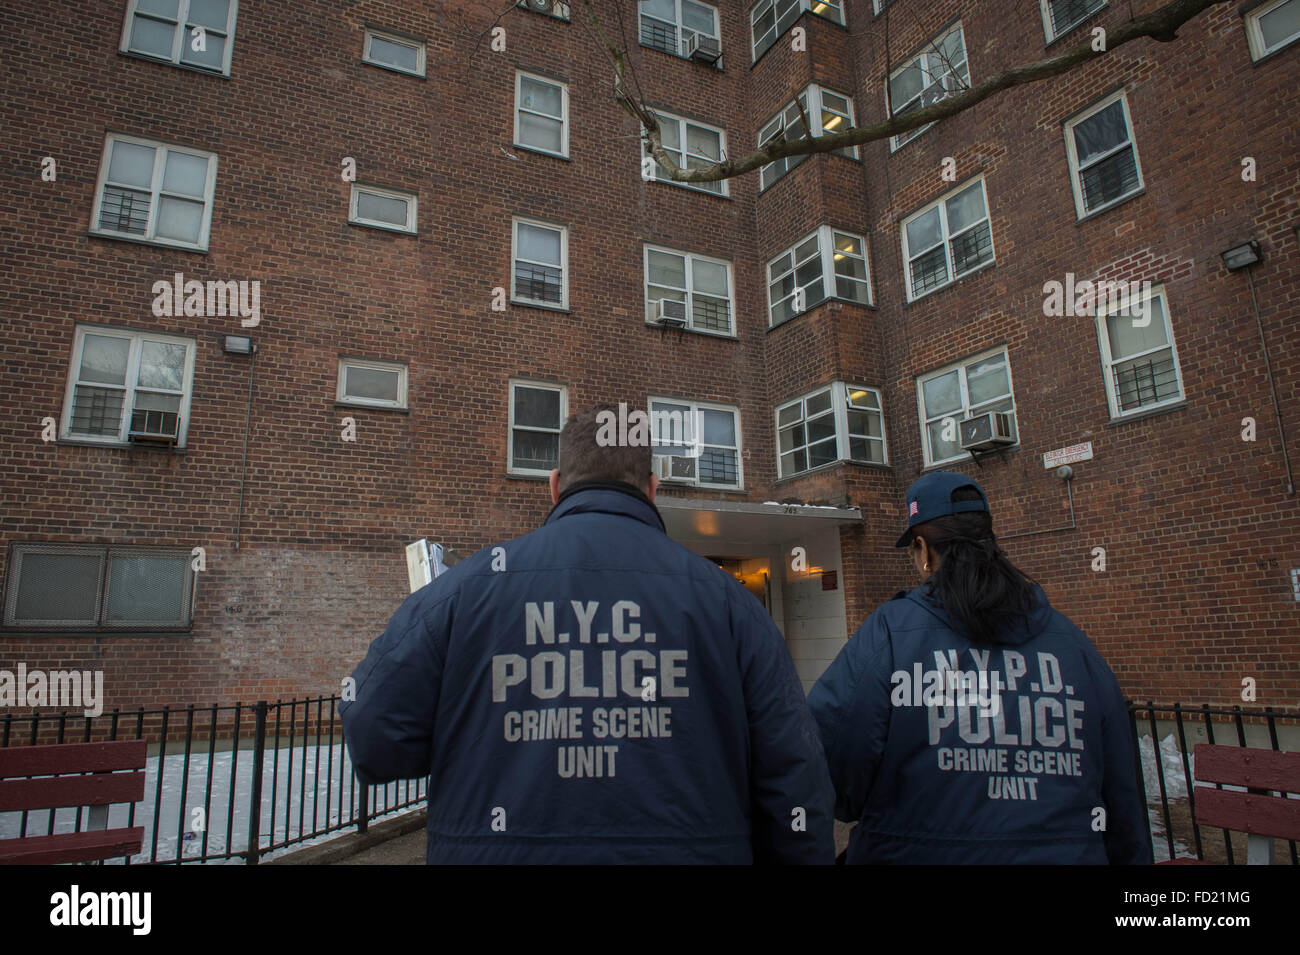 Crime Scene Unit High Resolution Stock Photography And Images Alamy